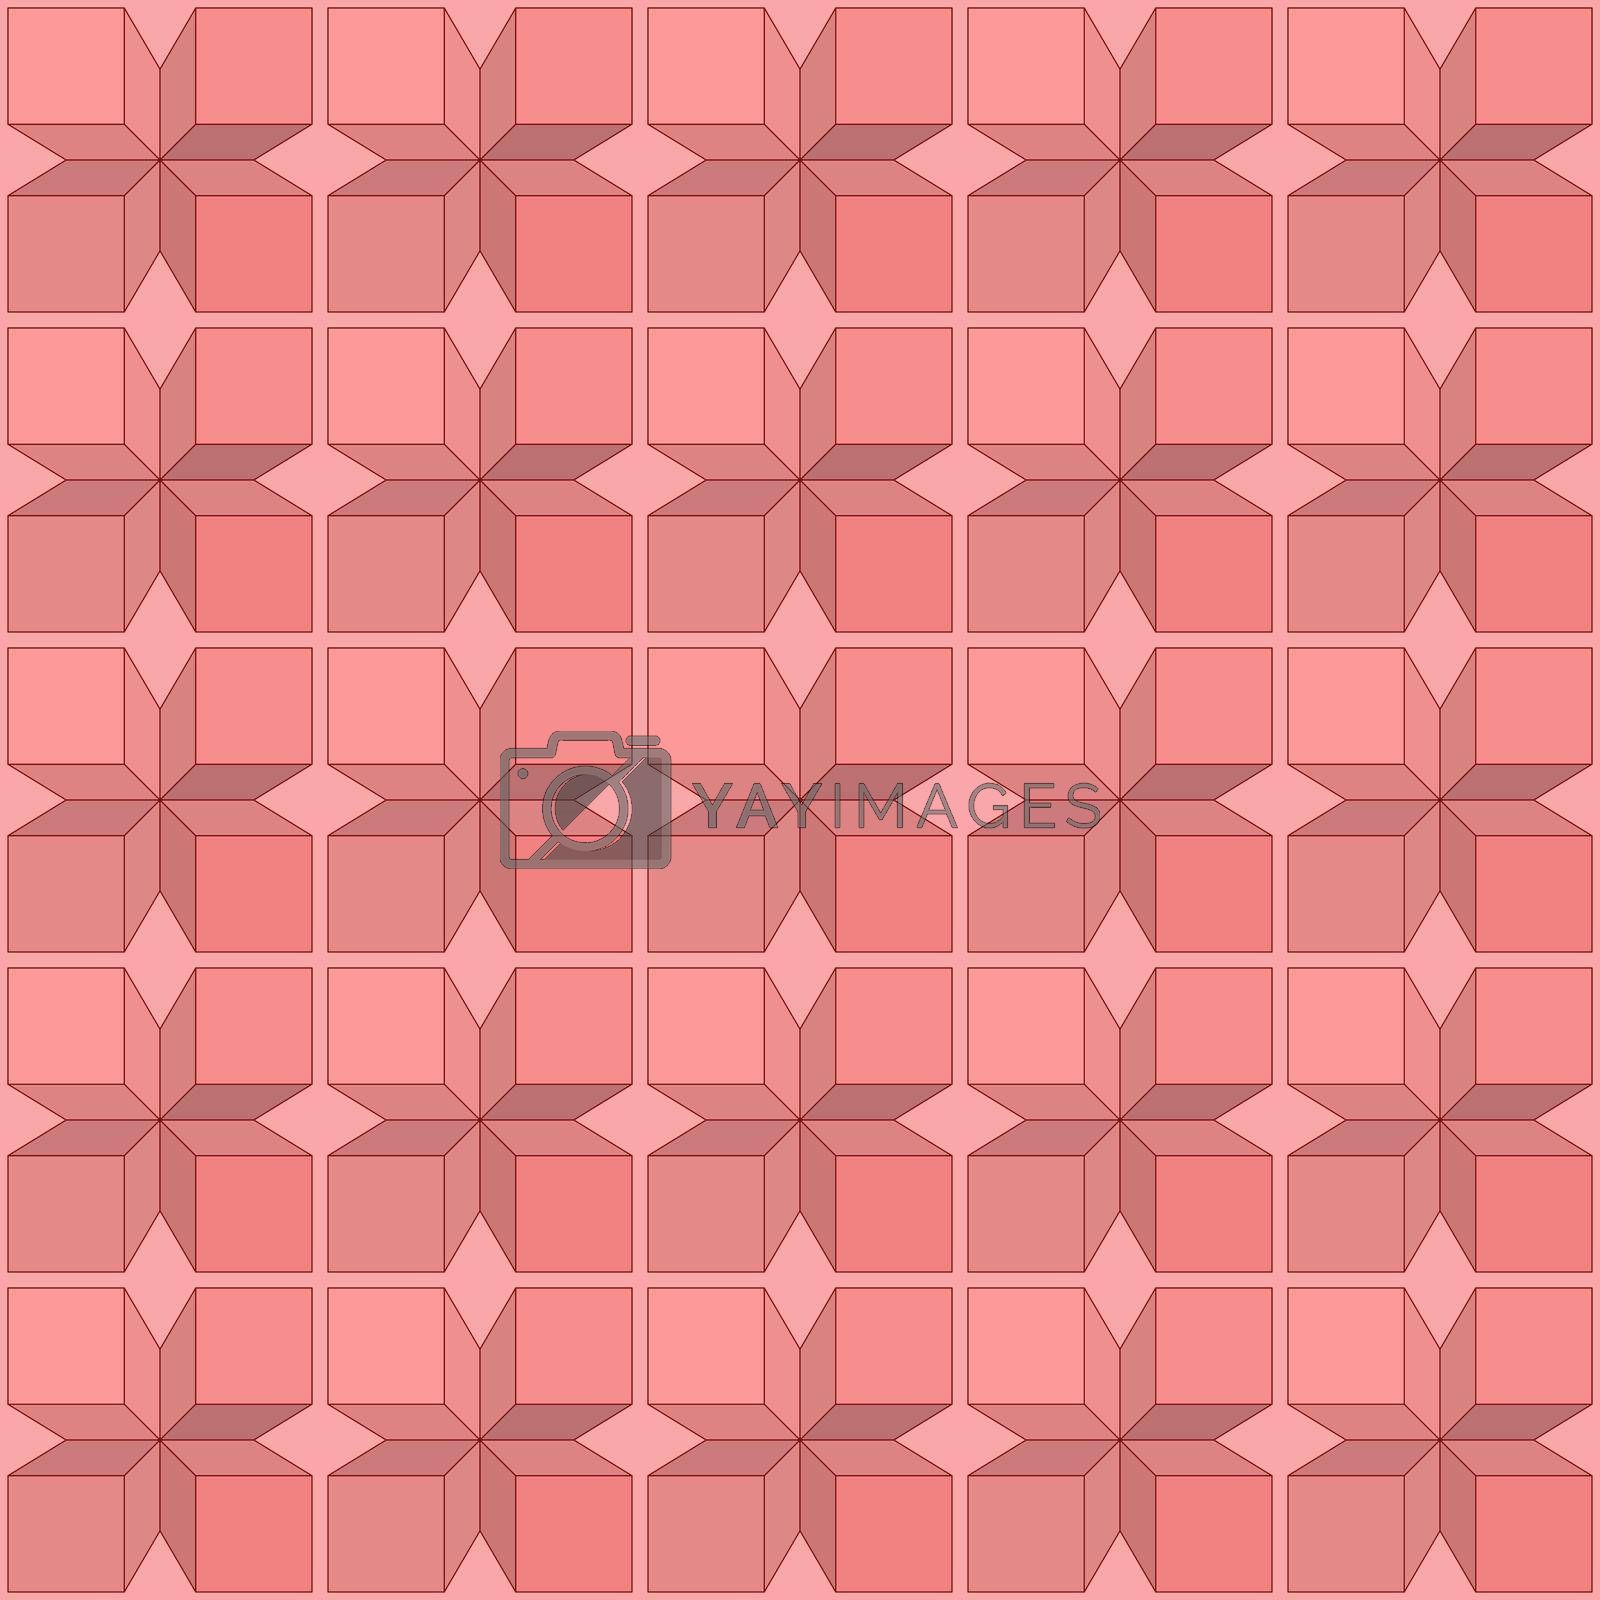 Seamless geometric pattern of squares for texture, textiles, prints, and simple backgrounds, flat style